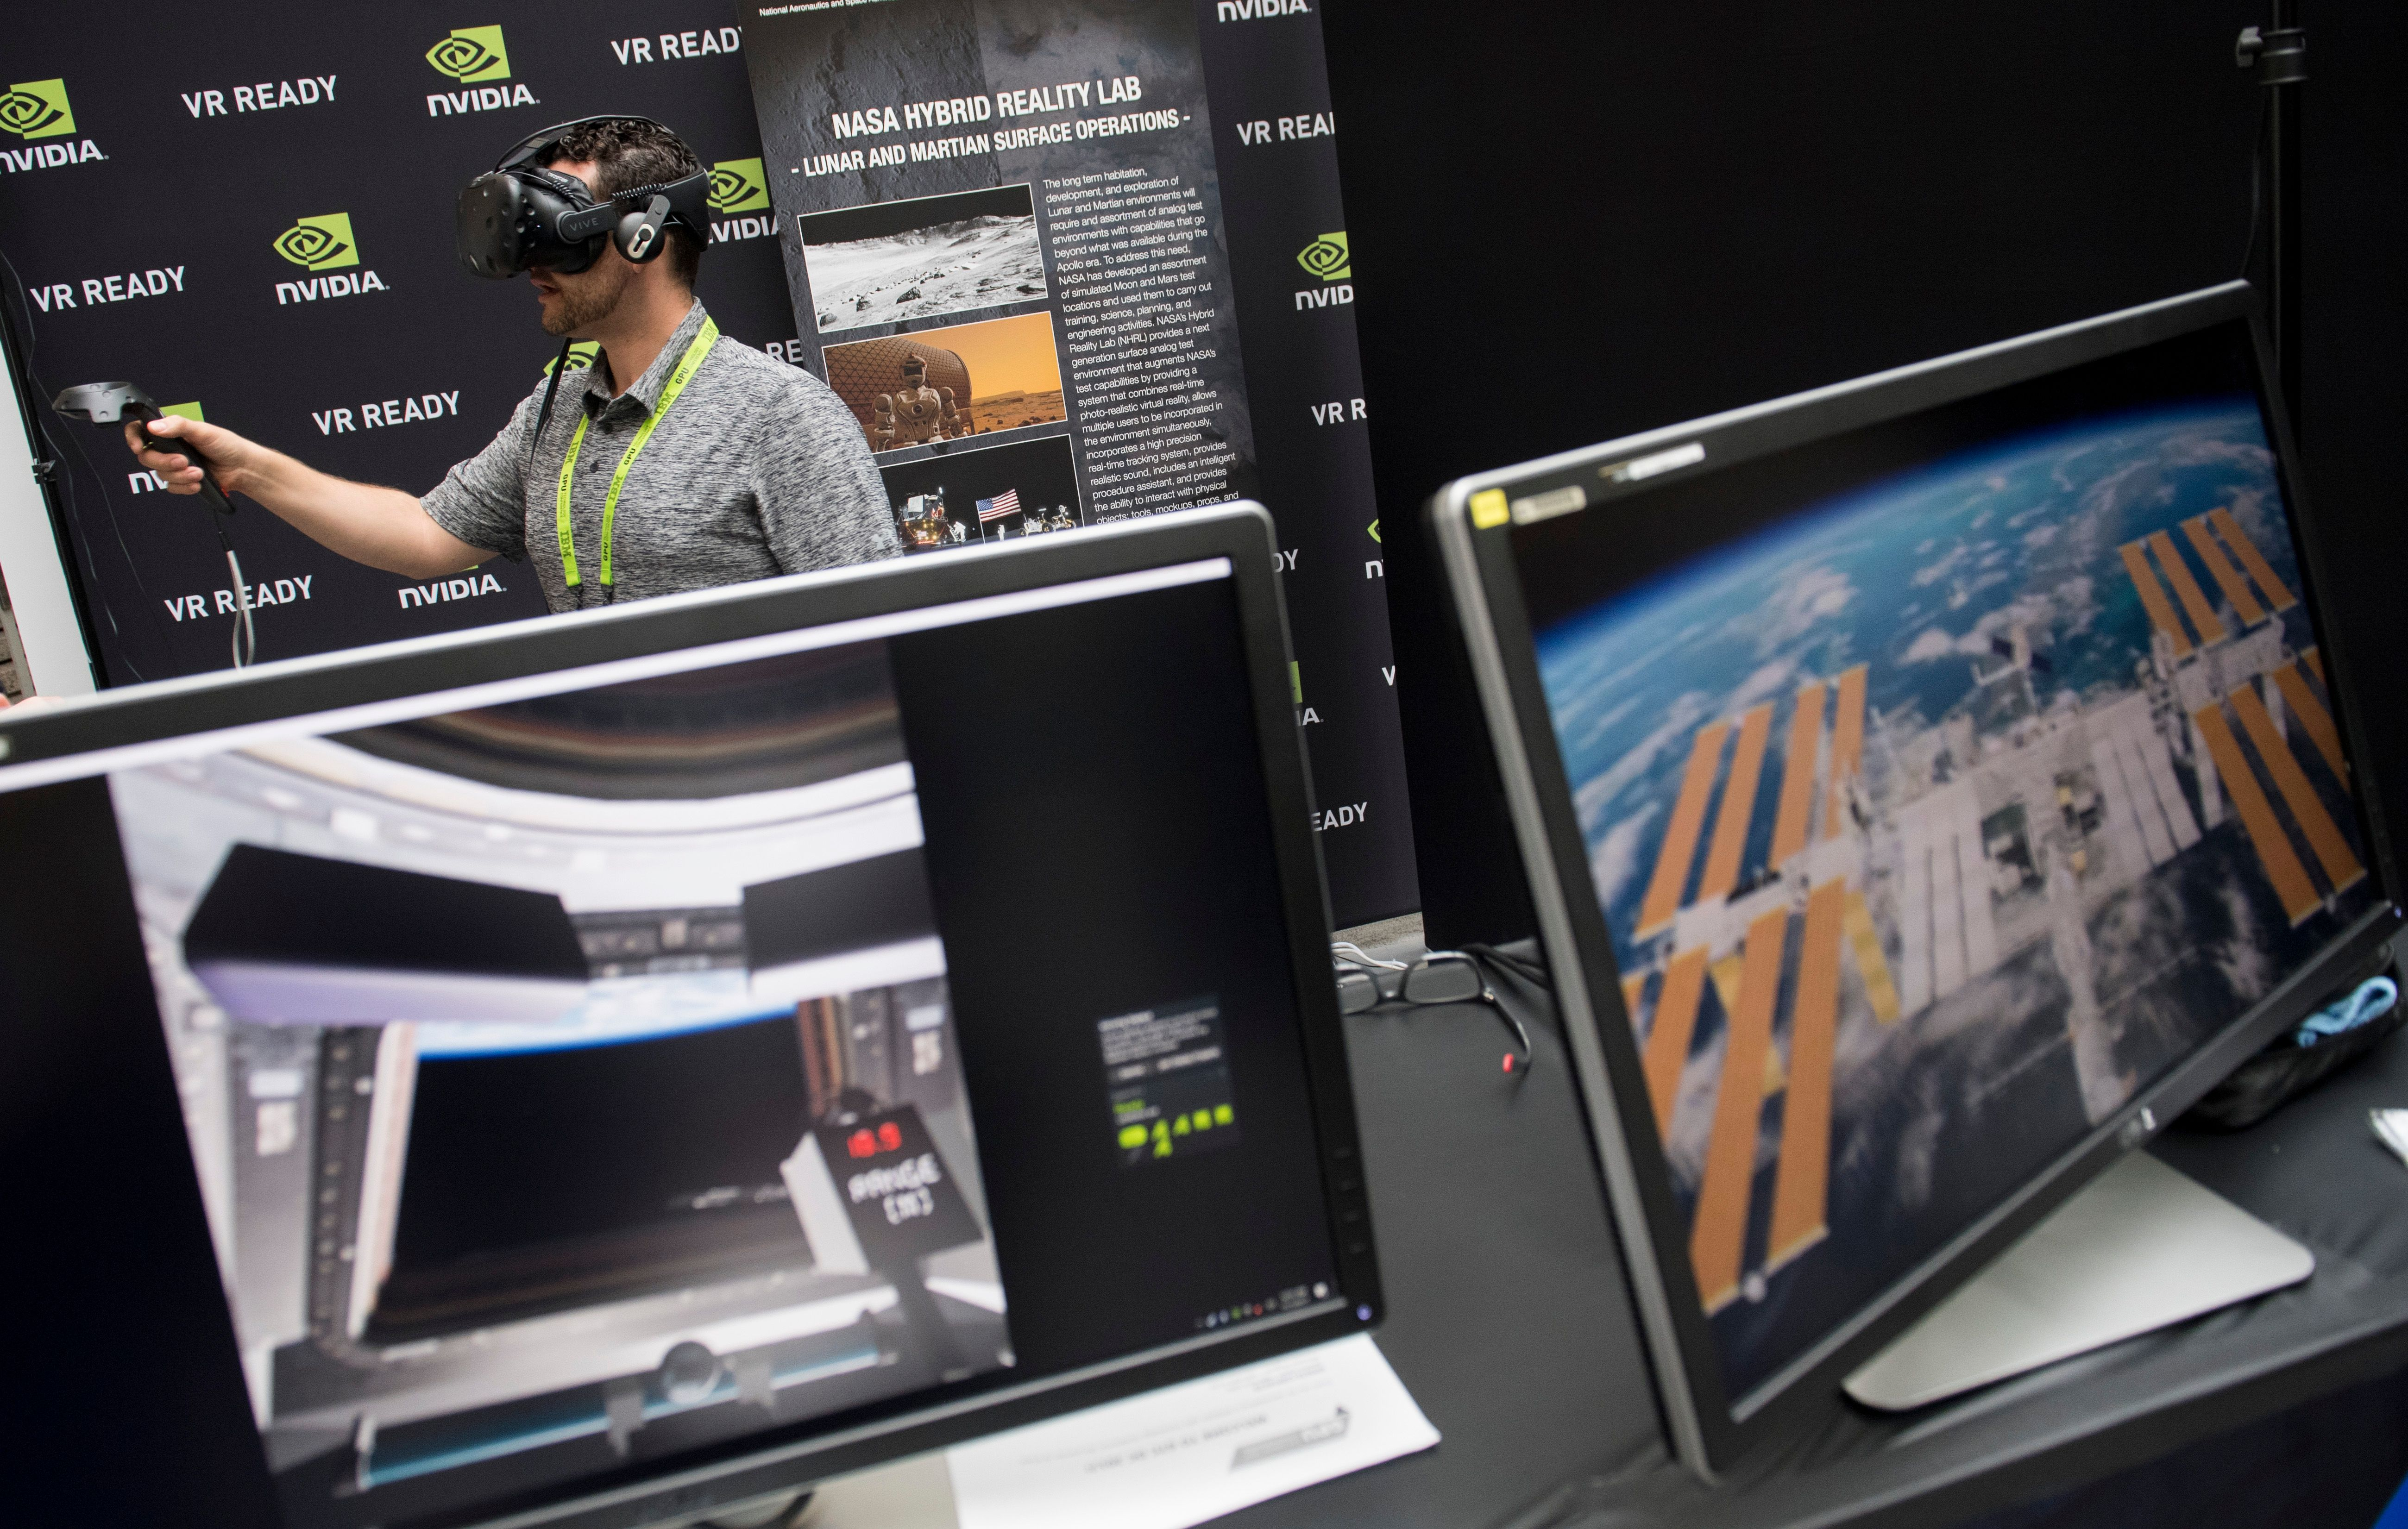 nvidia powered virtual reality gear